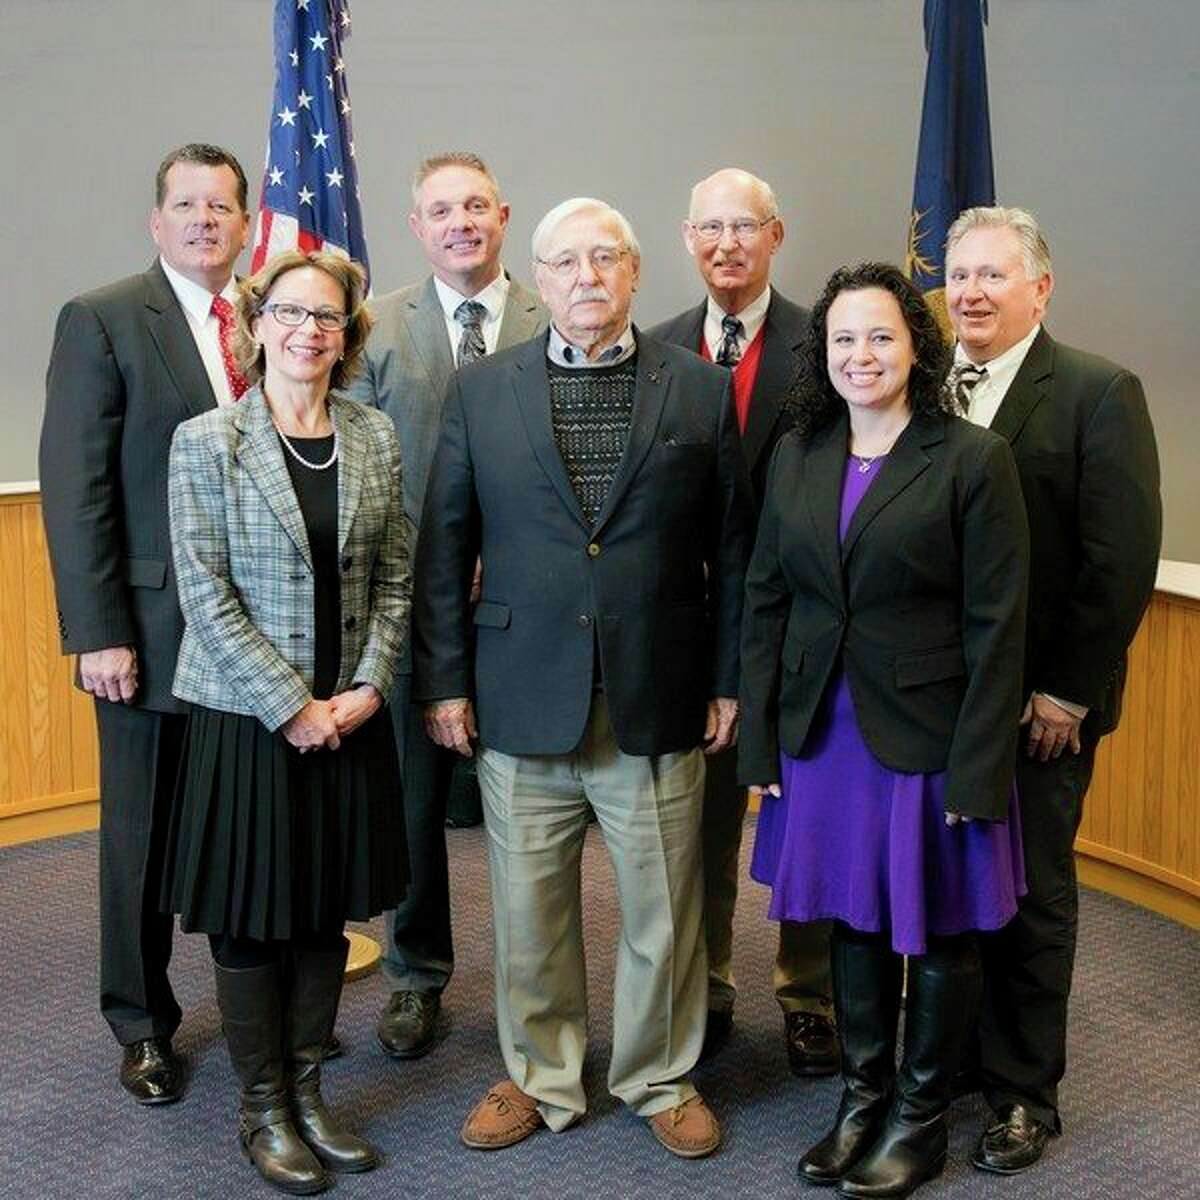 Photo provided Midland County Board of Commissioners (front row left to right): Gaye Terwillegar, R-District 4; Vice Chair James Geisler, R-District 5; and Jeanette Snyder, R-District 1; (back row left to right) Eric Dorrien, R-District 6; Chair Mark Bone, R-District 2; Steve Glaser, R-District 3; and Scott Noesen, R-District 7.